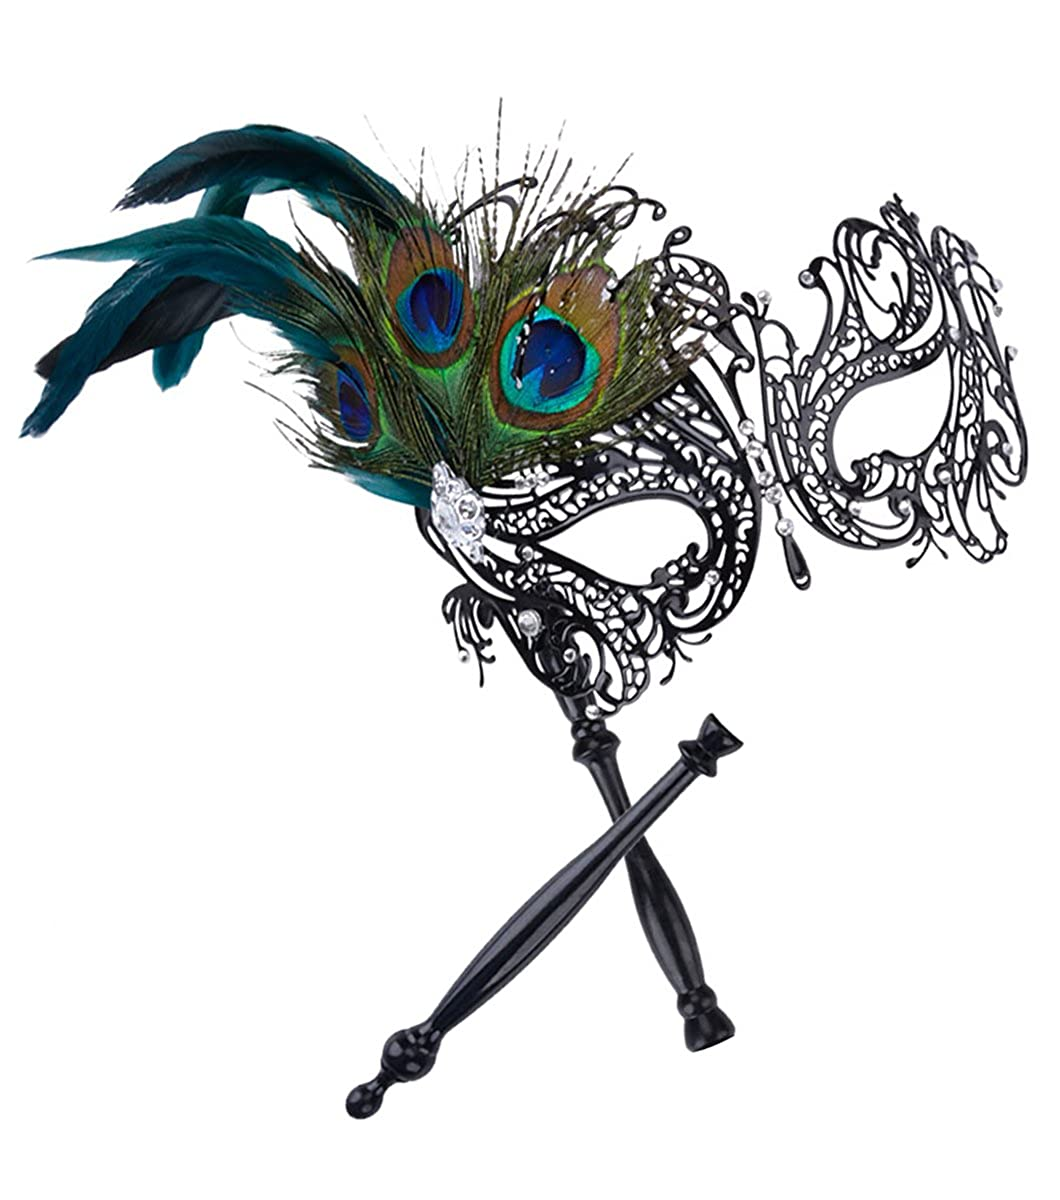 Coxeer Masquerade Mask on Stick Halloween Costume Mask Hollow Out Metal Mask E111643B571F151